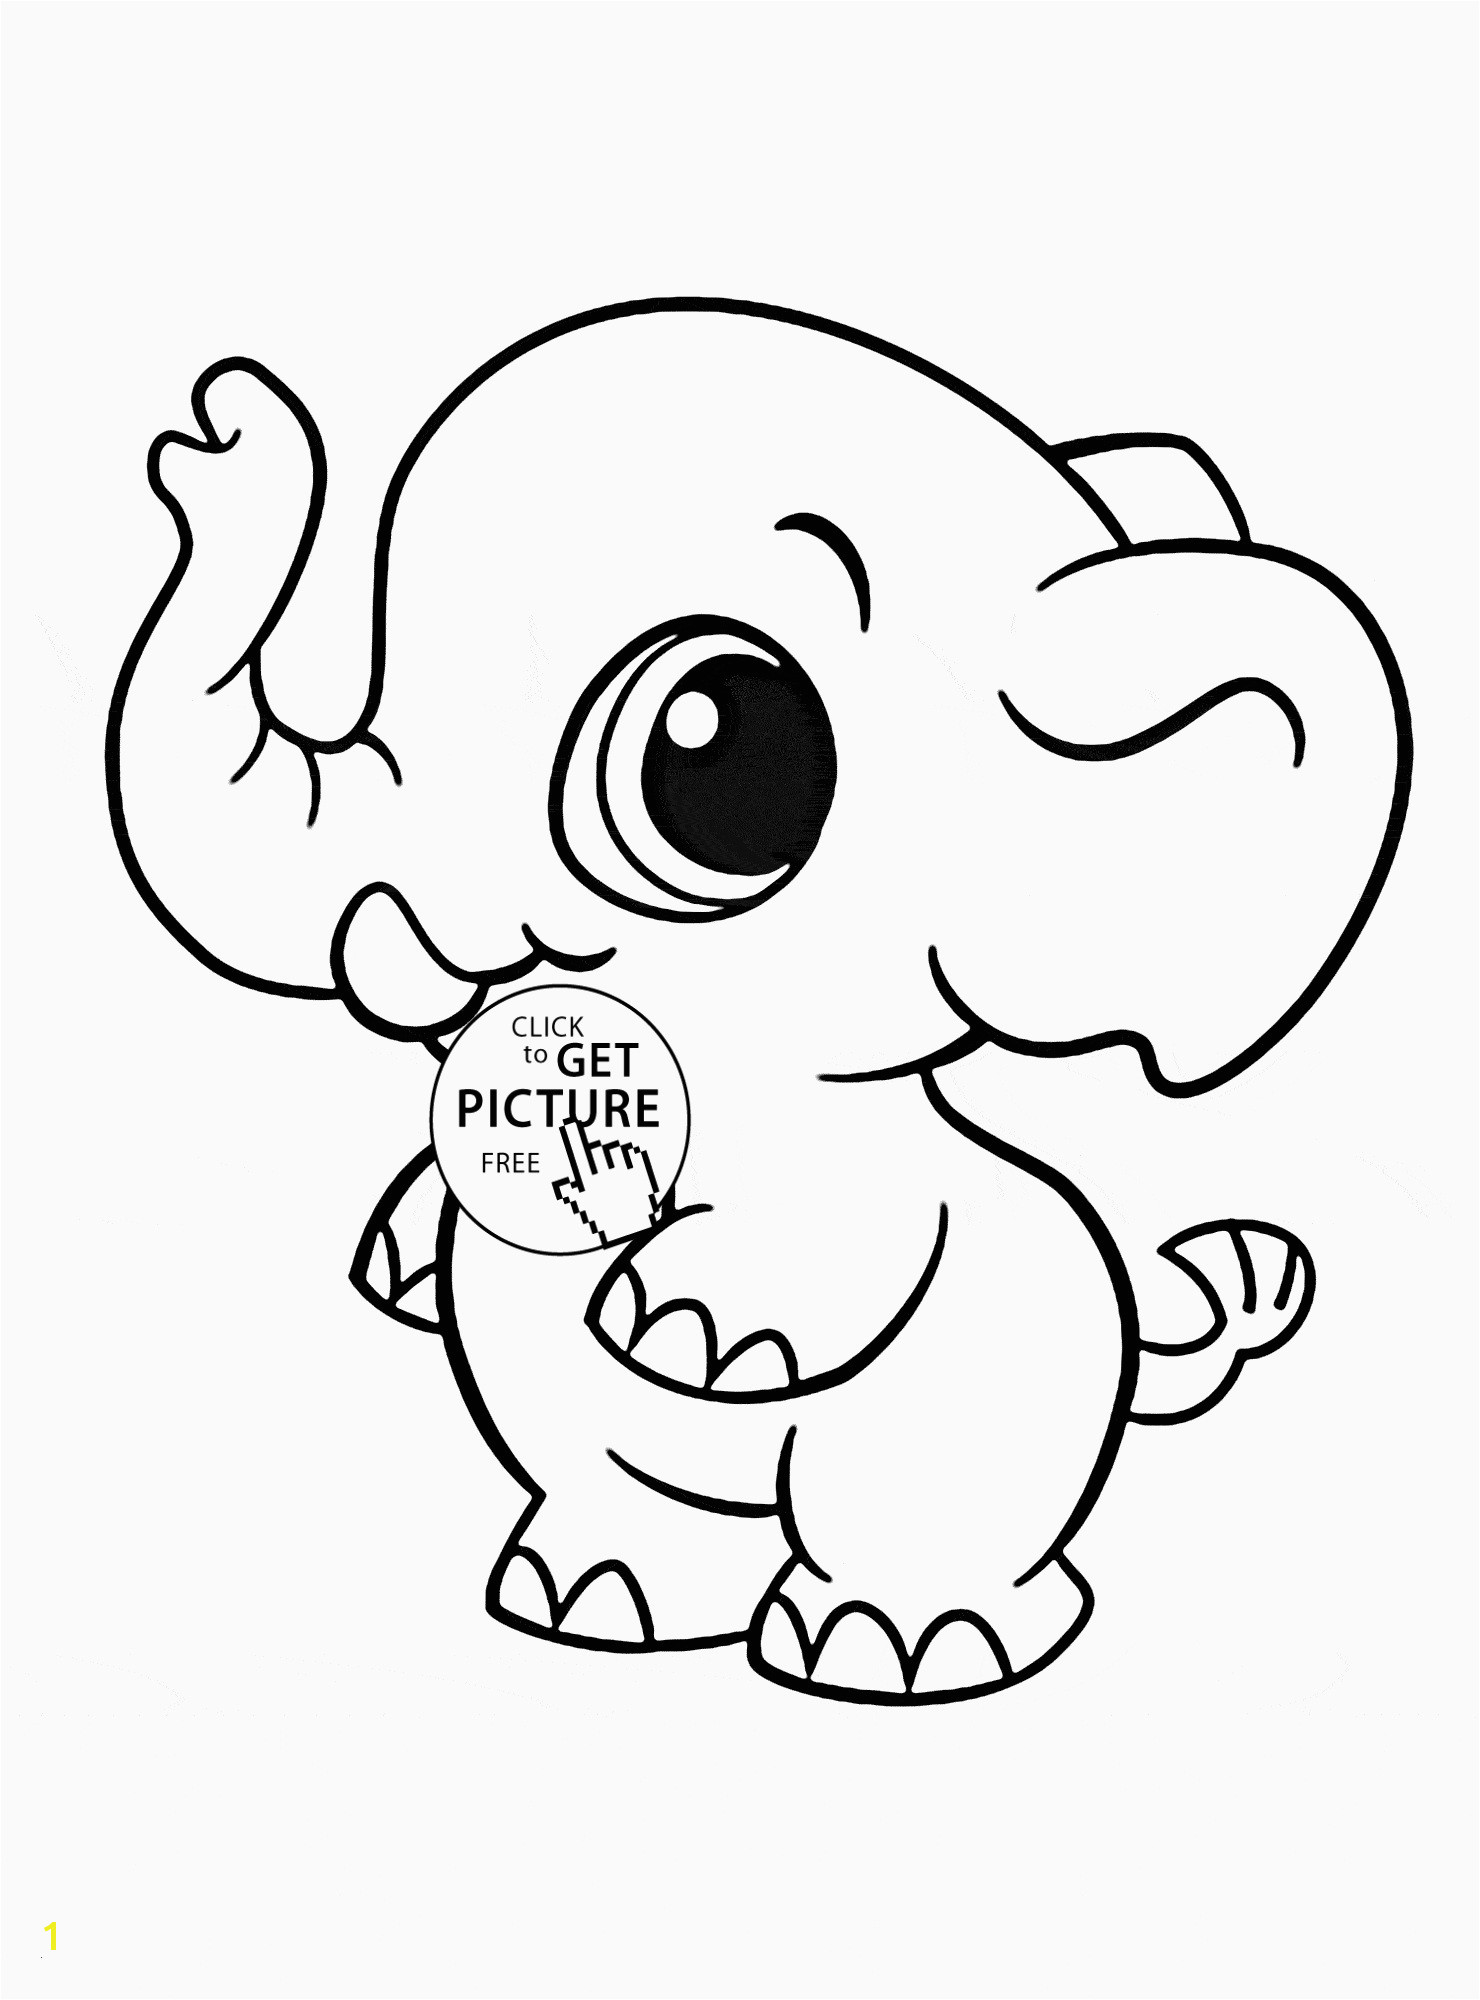 Coloring Pages to Print Lovely Coloring Pages that are Printable Elegant Drawing Printables 0d Ruva